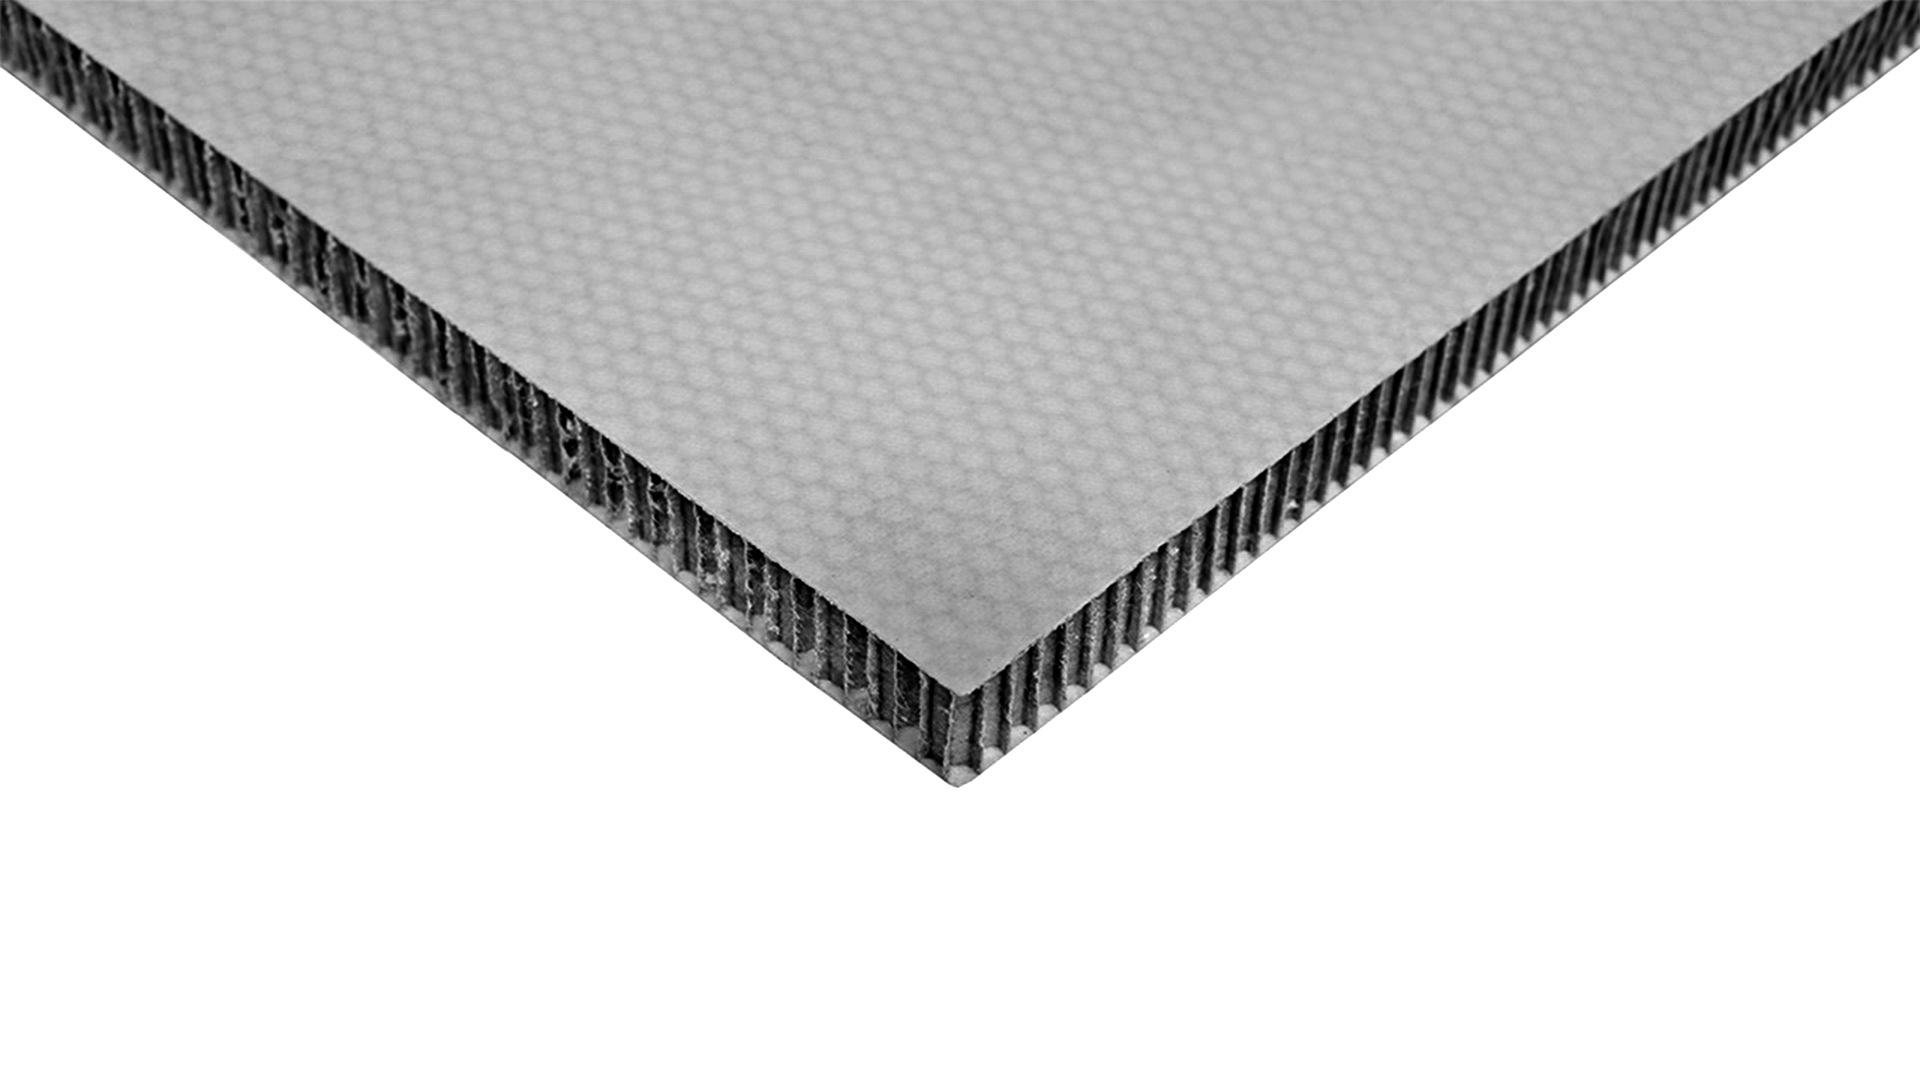 aeroFIBER™ Honeycomb Panels